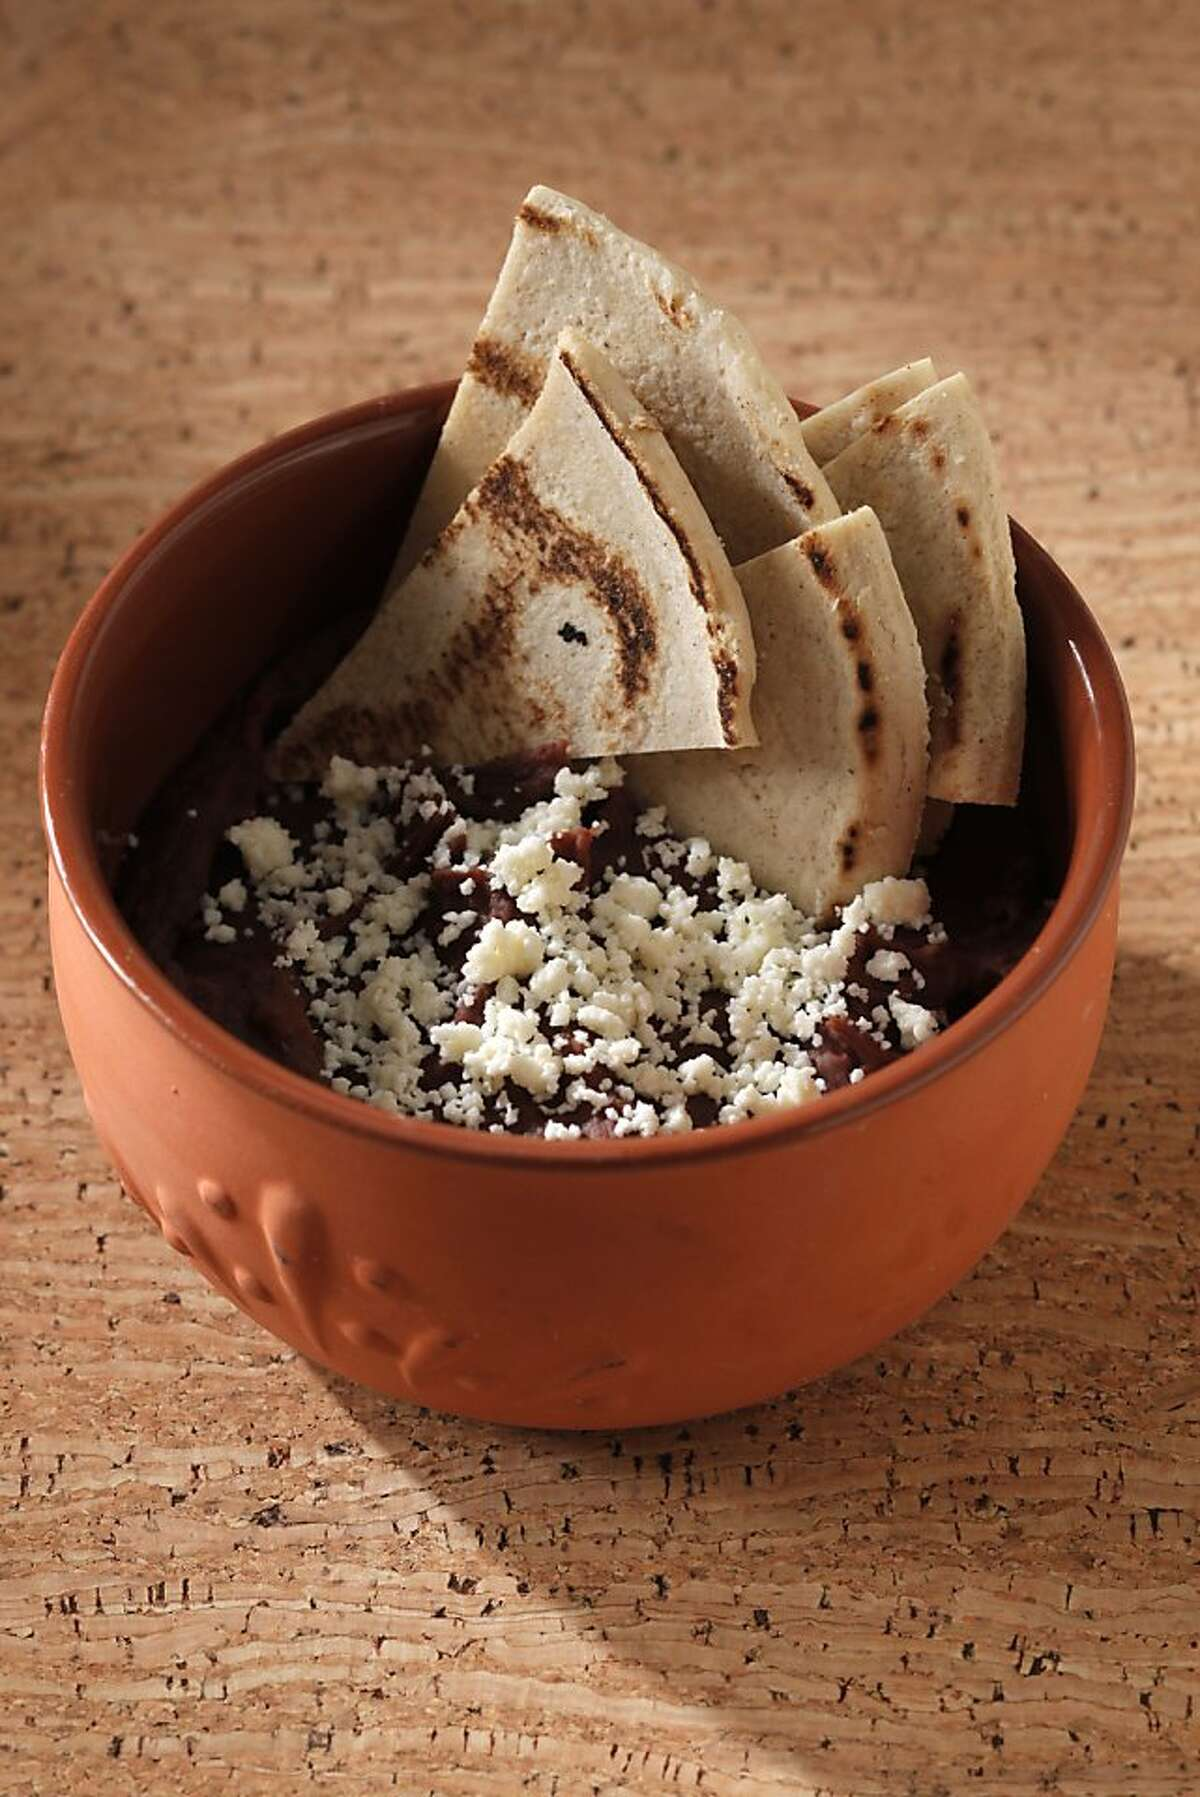 Queso Fresco as seen in San Francisco, California on Wednesday, May 9, 2012. Food styled by Stephanie Kirkland.